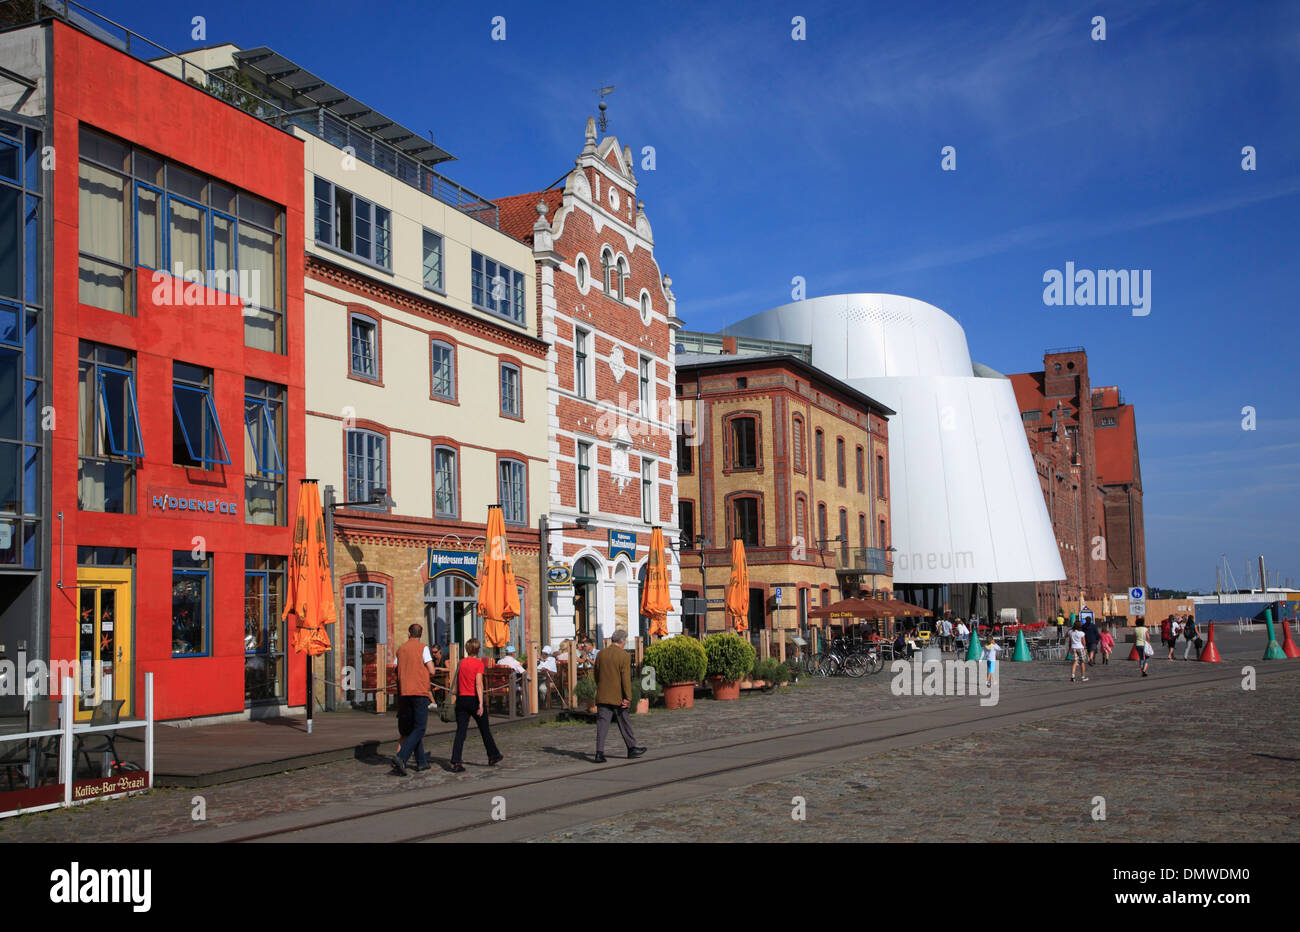 Hanseatic town Stralsund, Houses and Ozeaneum at harbour, Baltic Sea, Mecklenburg Western Pomerania, Germany, Europe - Stock Image